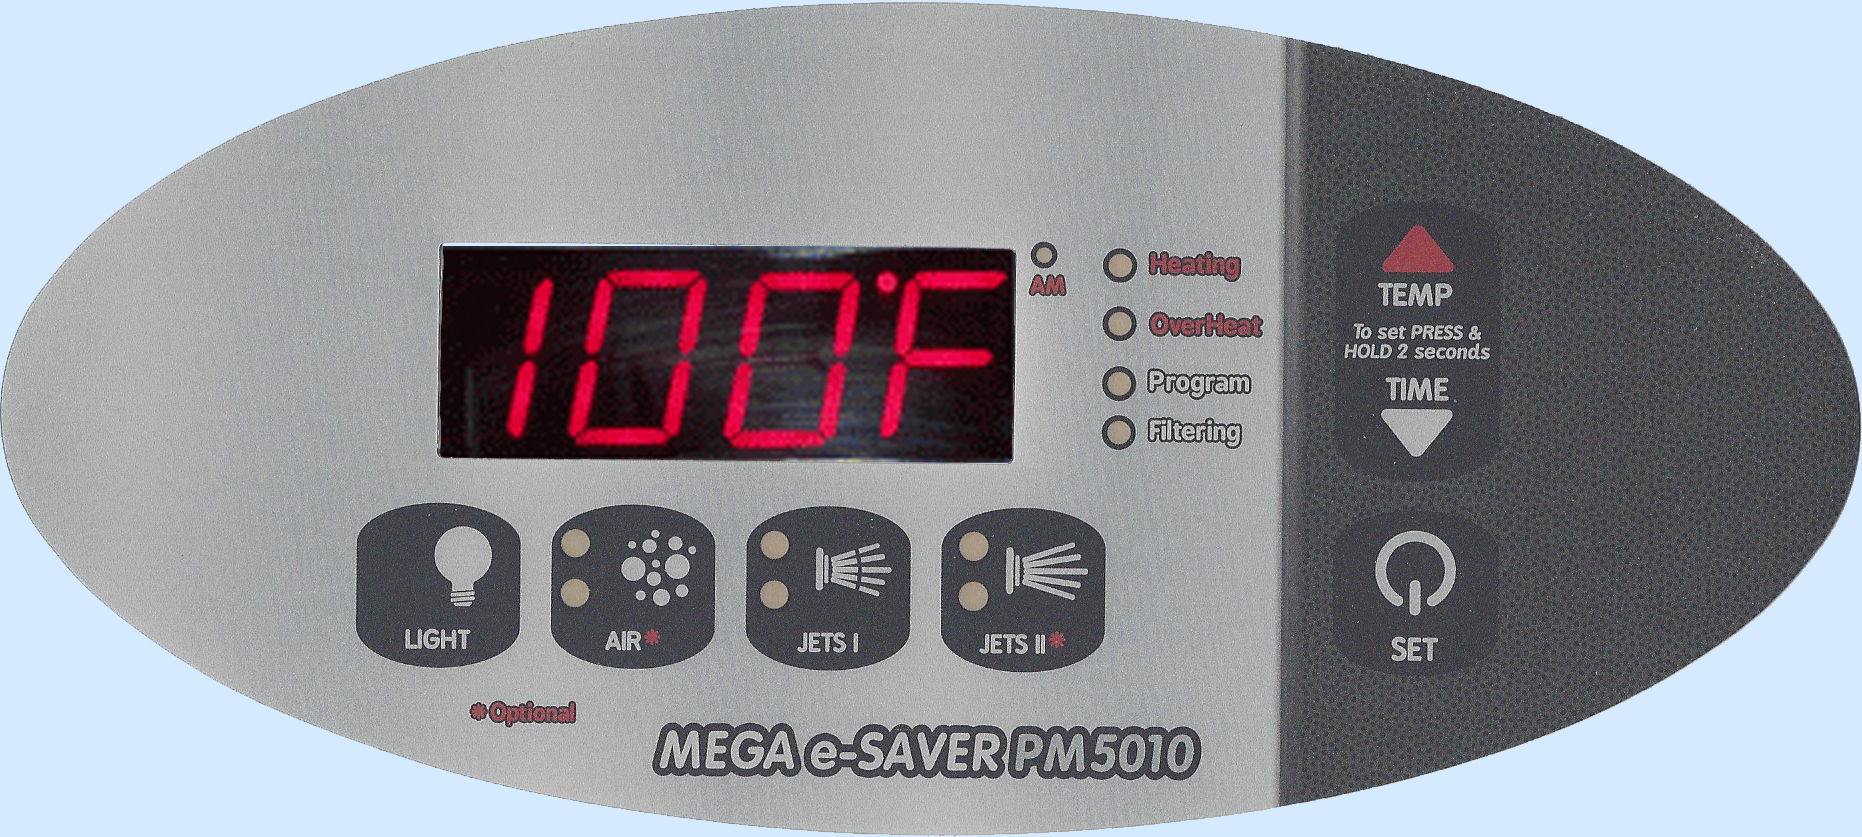 hight resolution of replacement pdc spas control for 299 95 free freight mfg direct whypm5010 digital spa side control